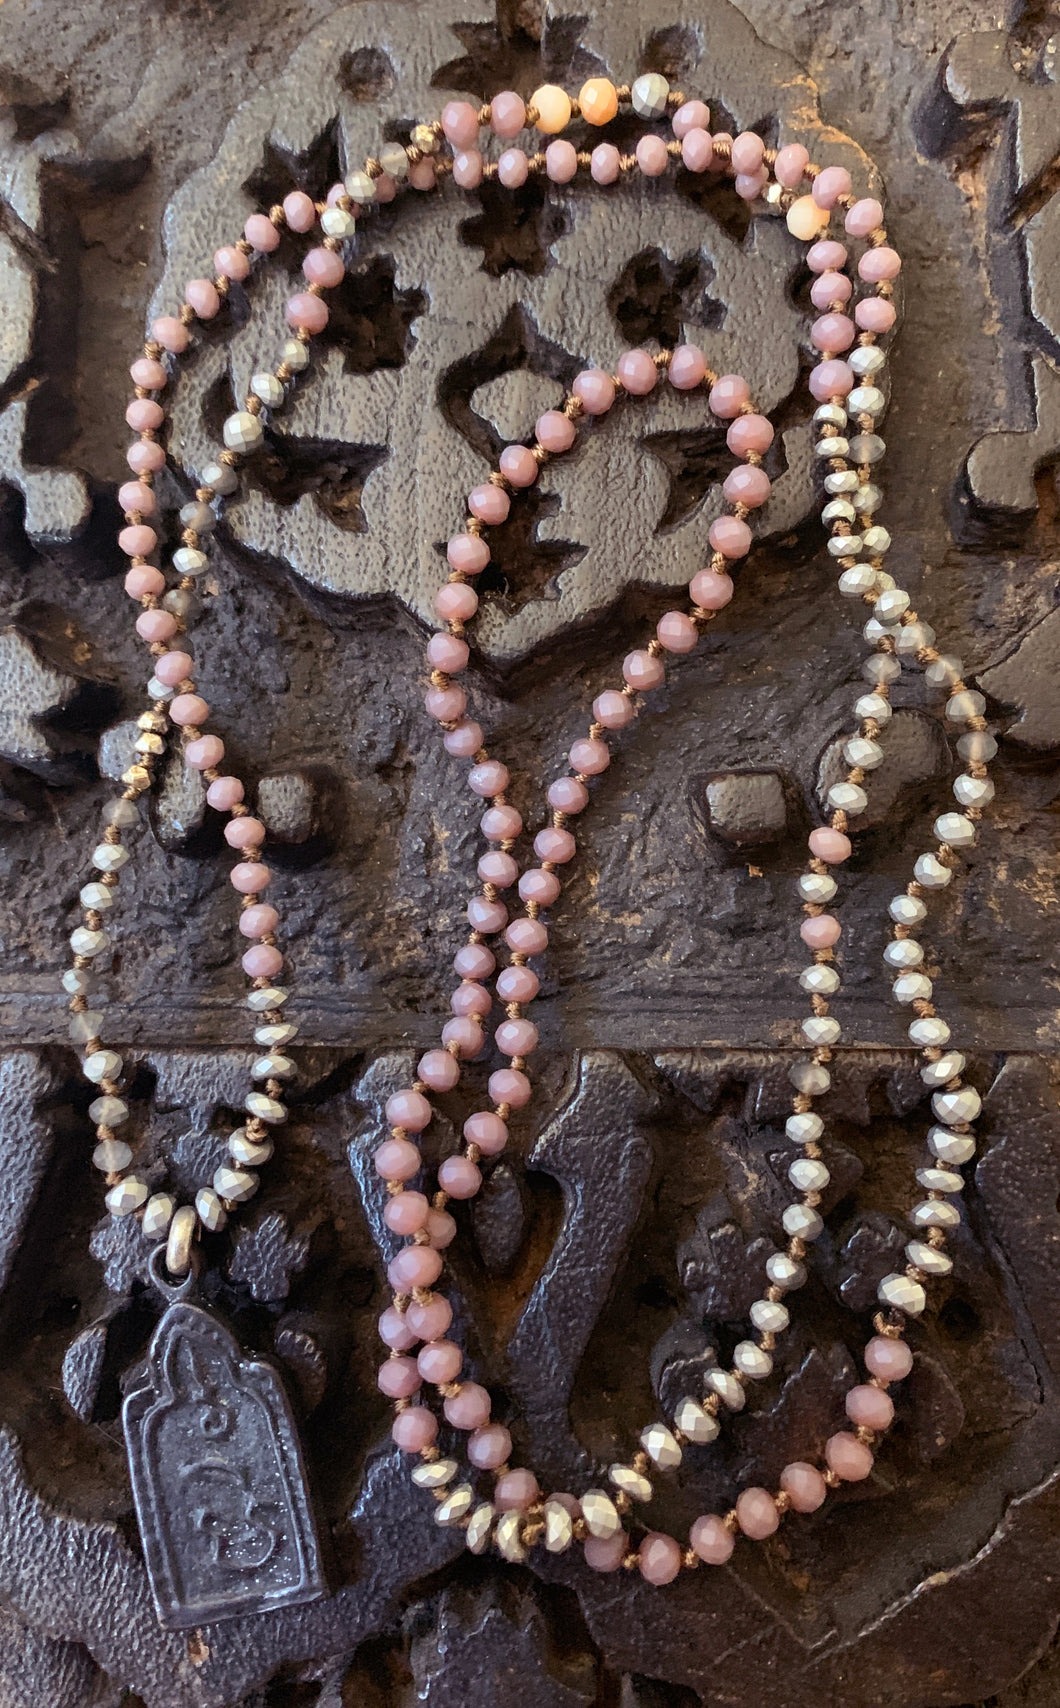 Simply Beautiful - Serene Meditation Necklace